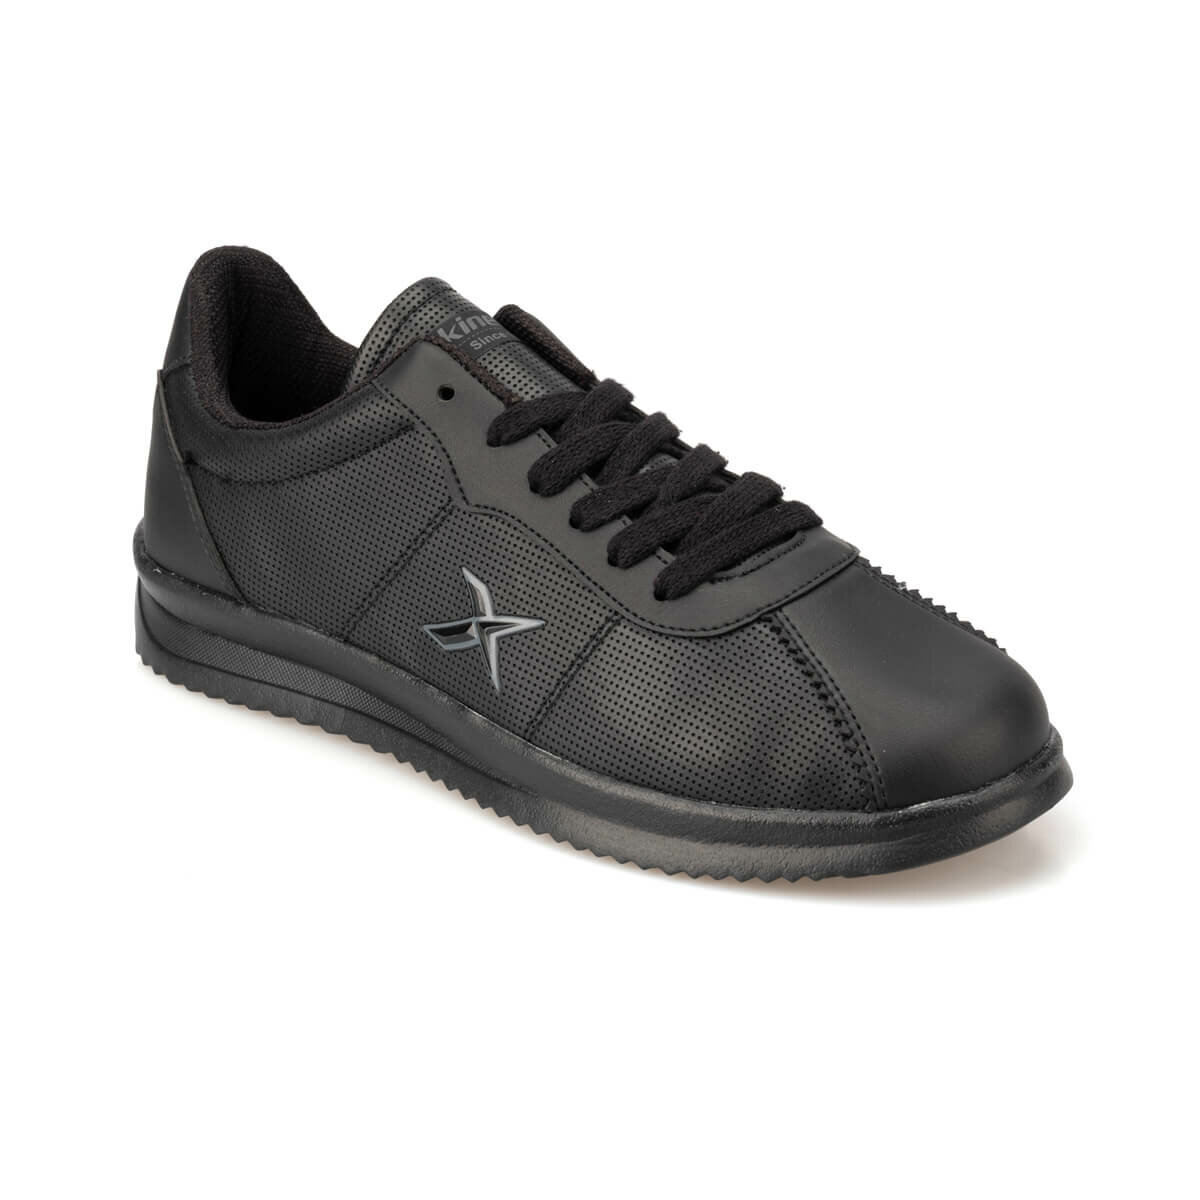 FLO FORV W 9PR Black Women 'S Sneaker Shoes KINETIX